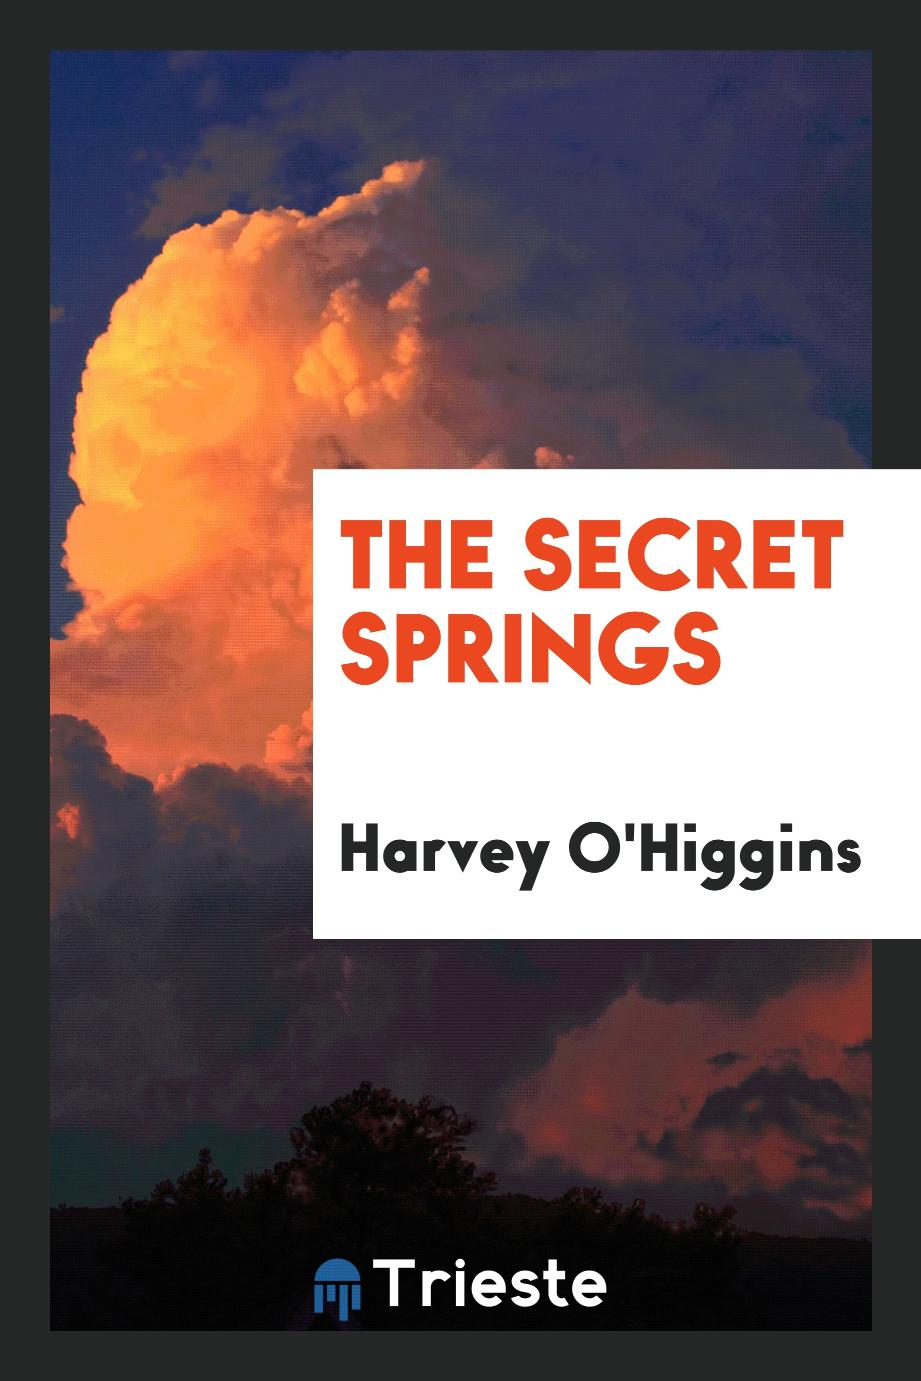 The secret springs